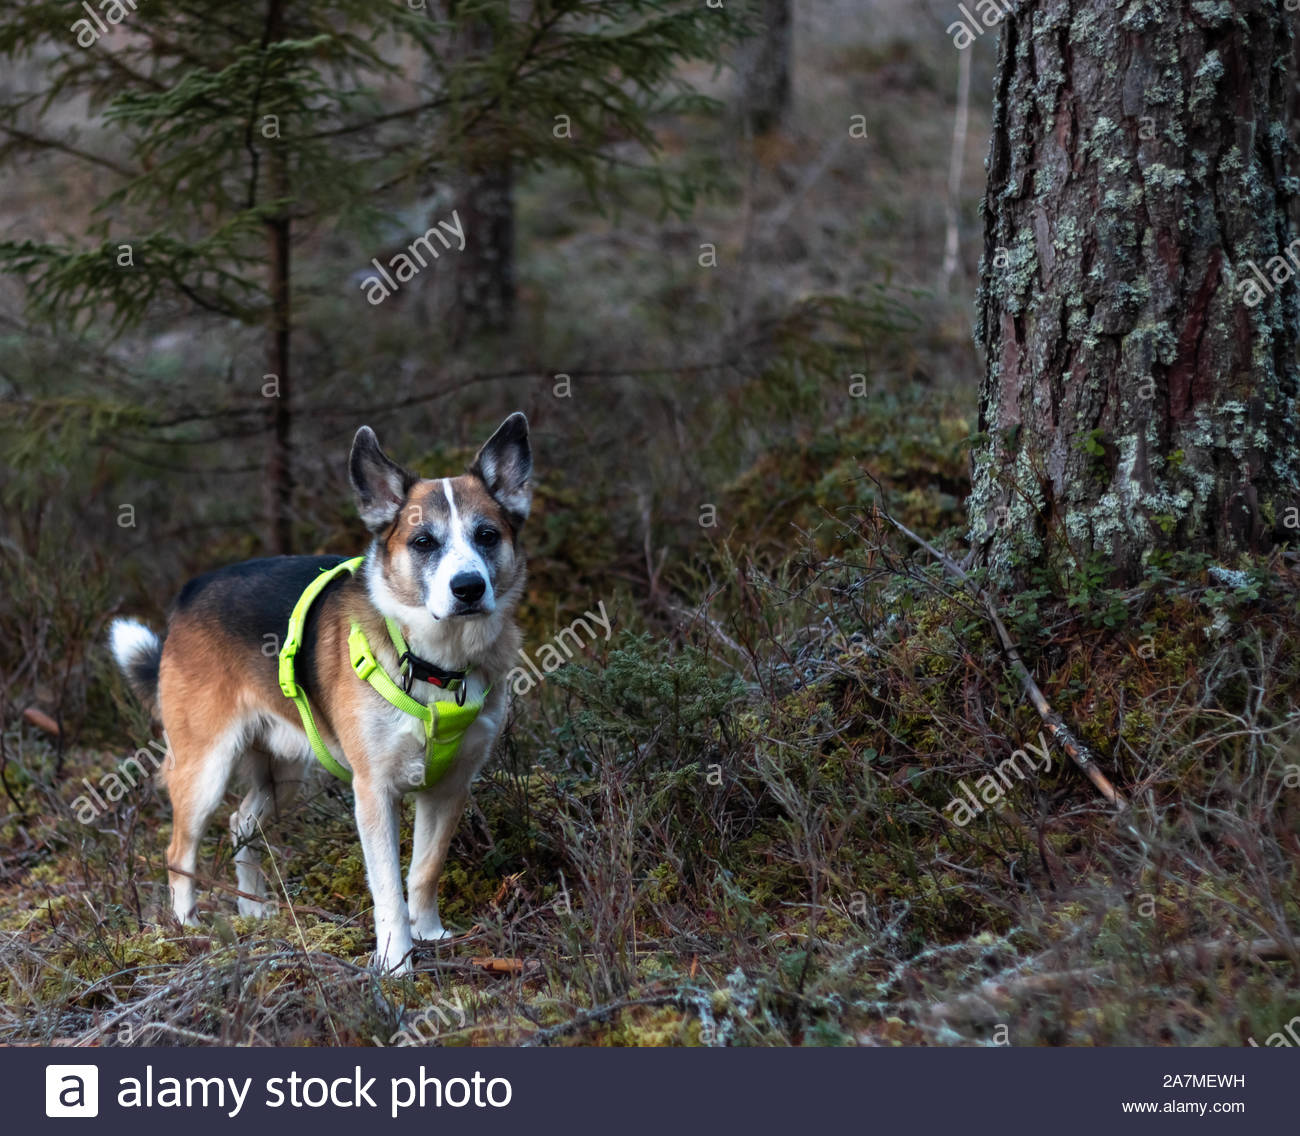 attentive dog during the hunting season equipped with a safety vest in signal color Stock Photo